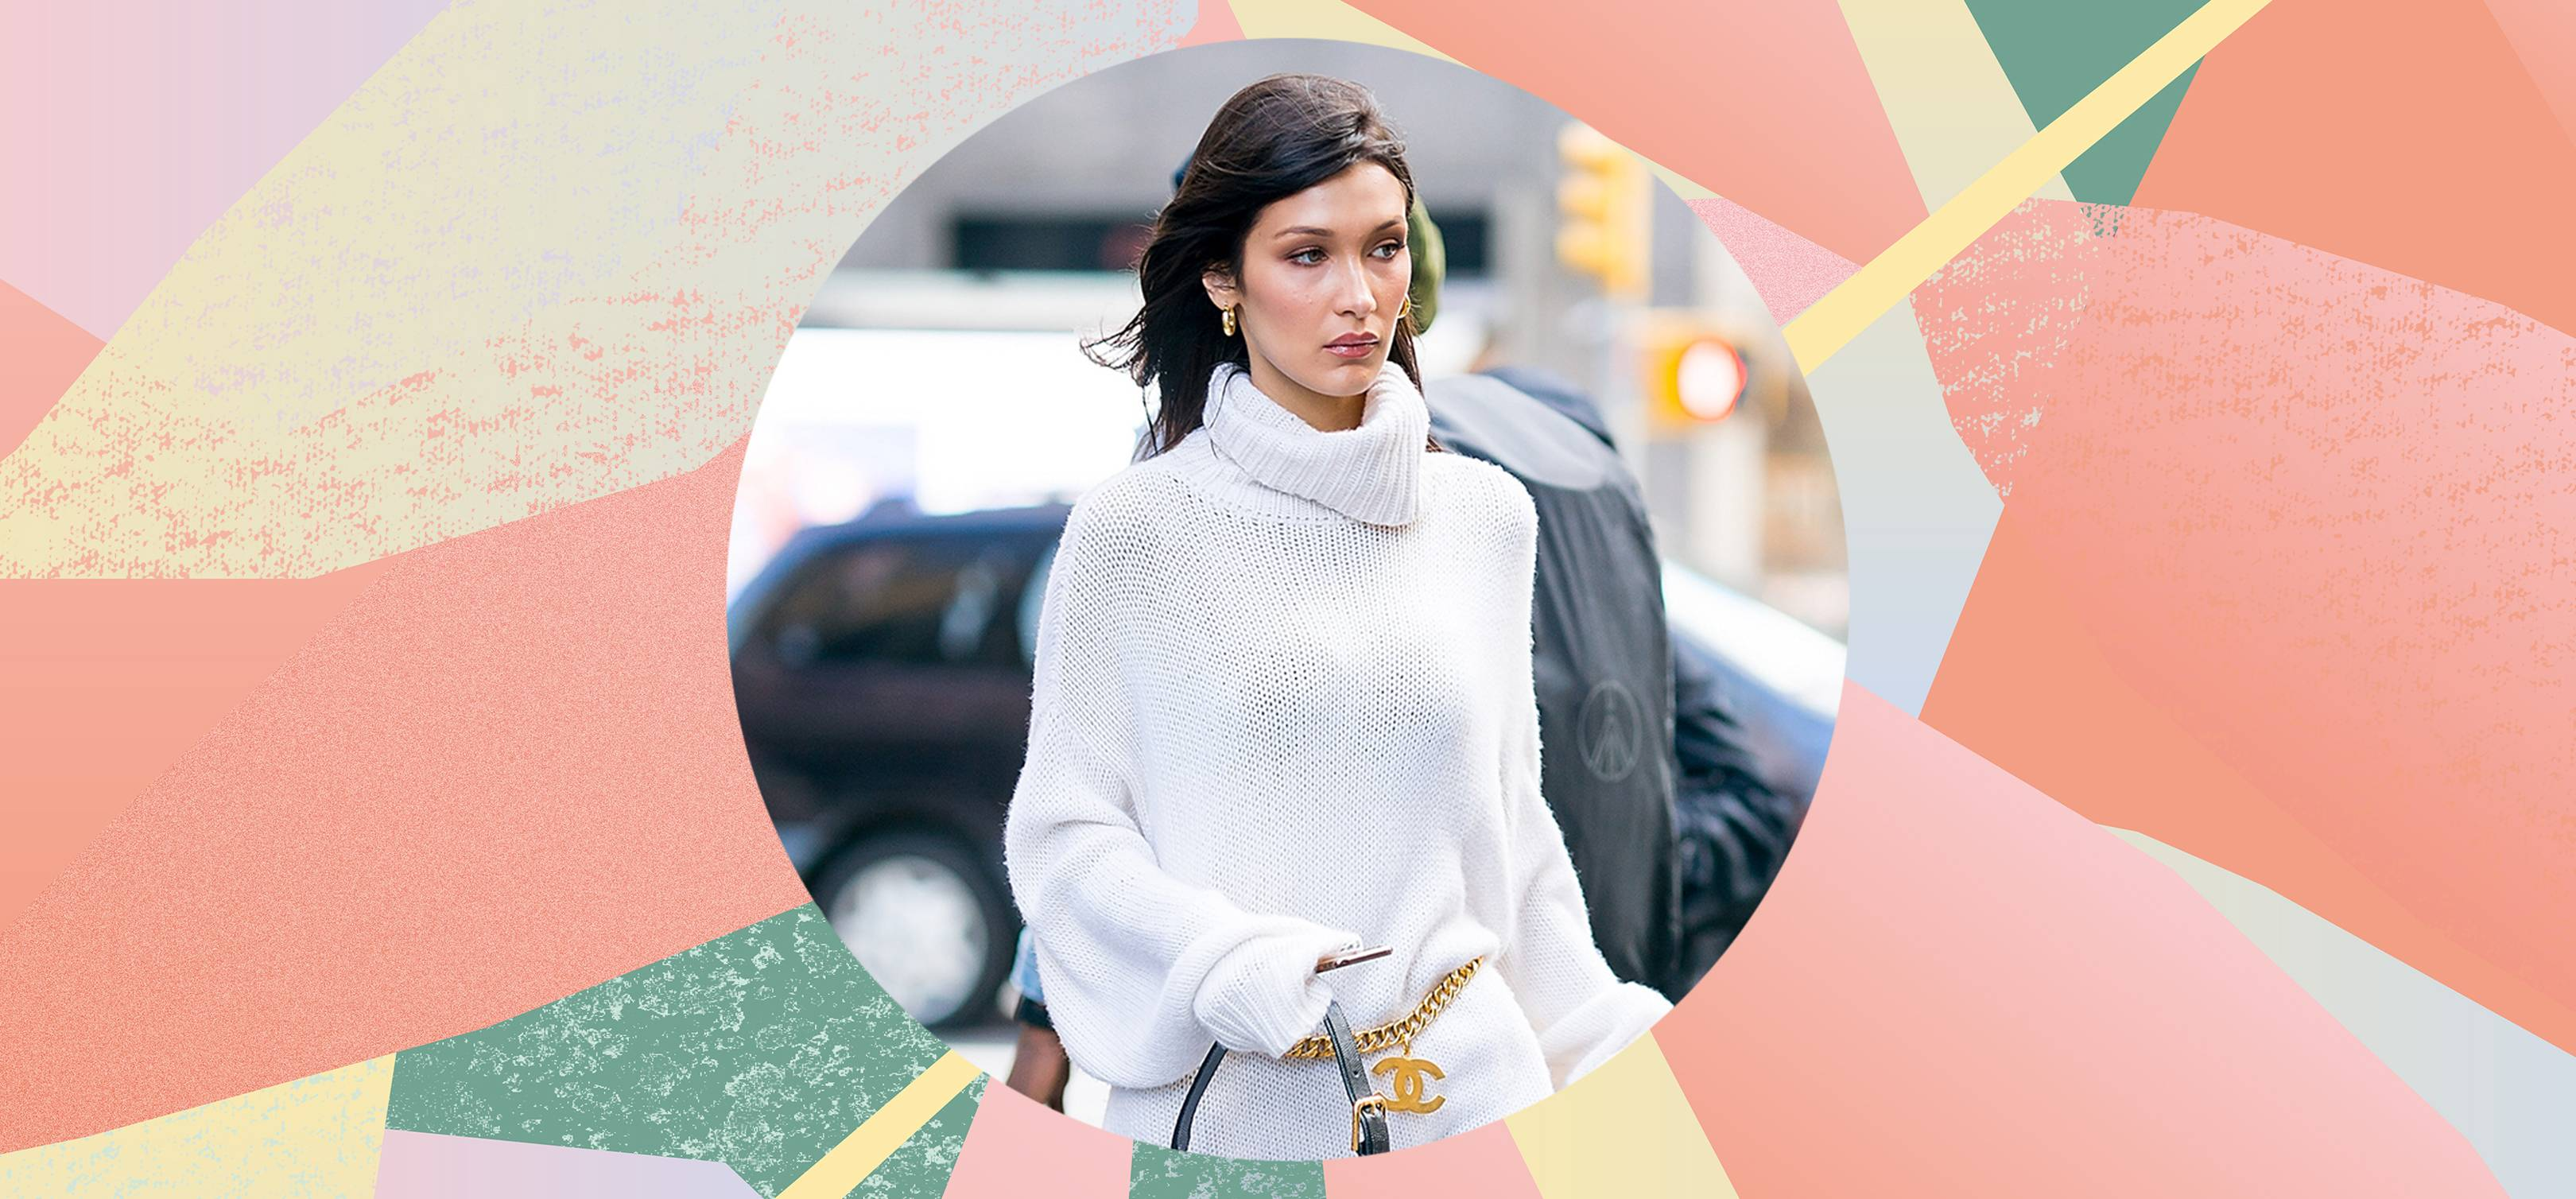 2880dc87 Bella Hadid Style File: The Supermodel's Fashion, Style and Dresses |  Glamour UK